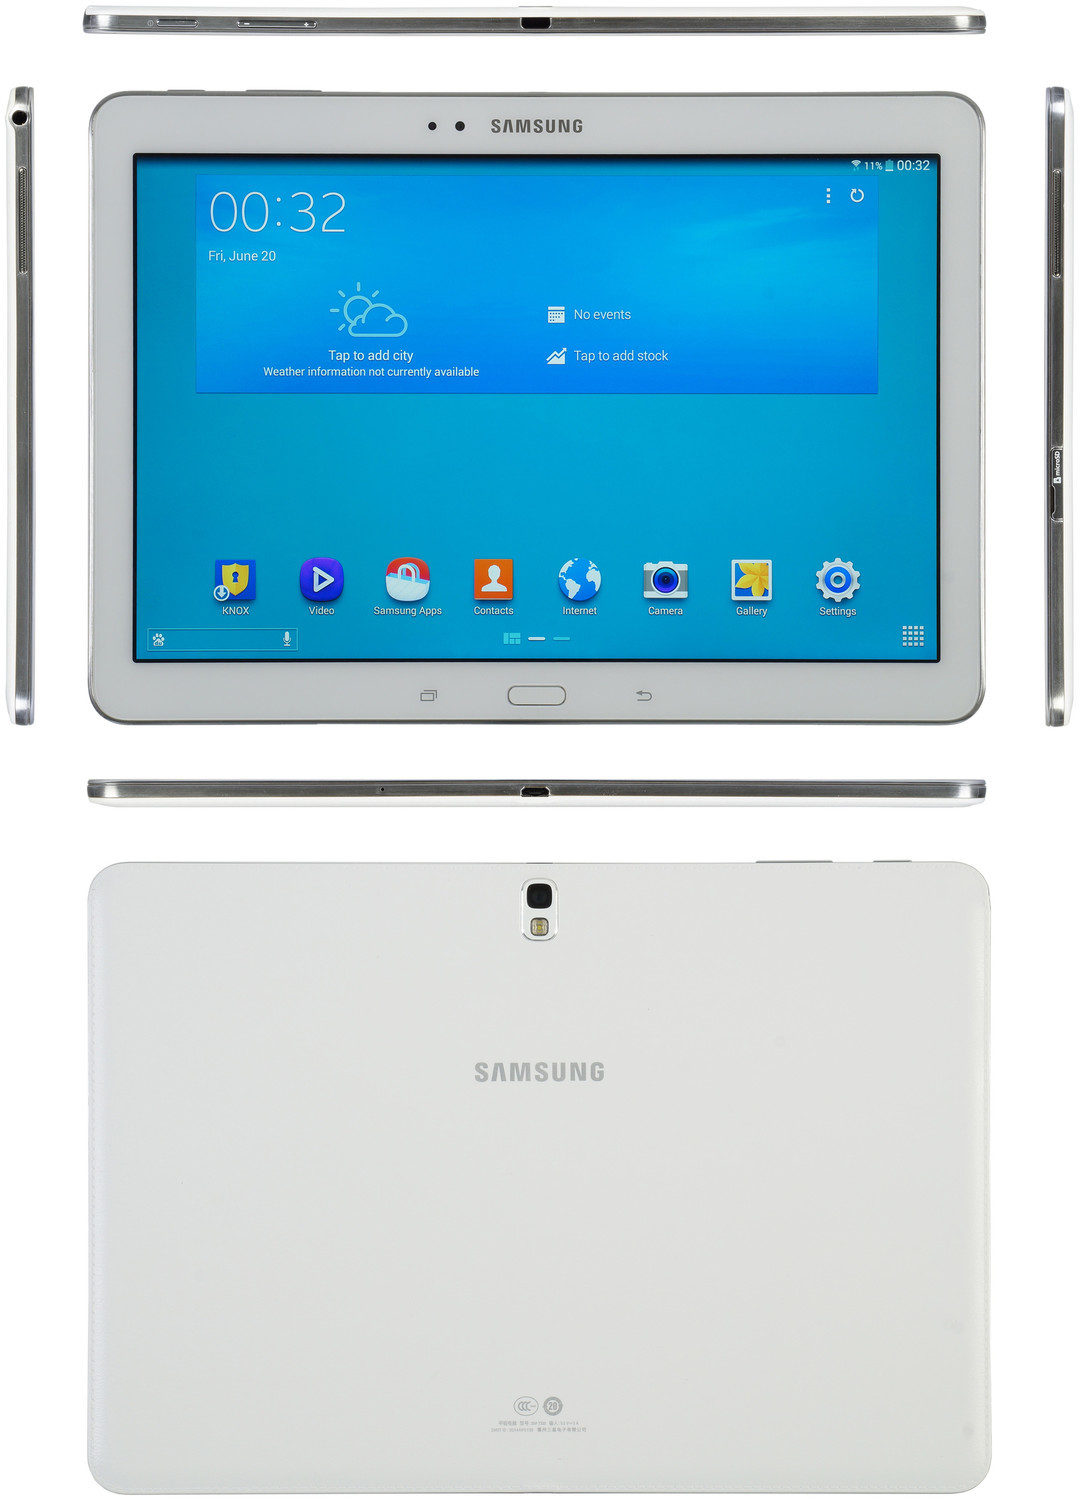 Samsung Galaxy Tab Pro 10.1 SM-T520 16GB - Specs and Price - Phonegg